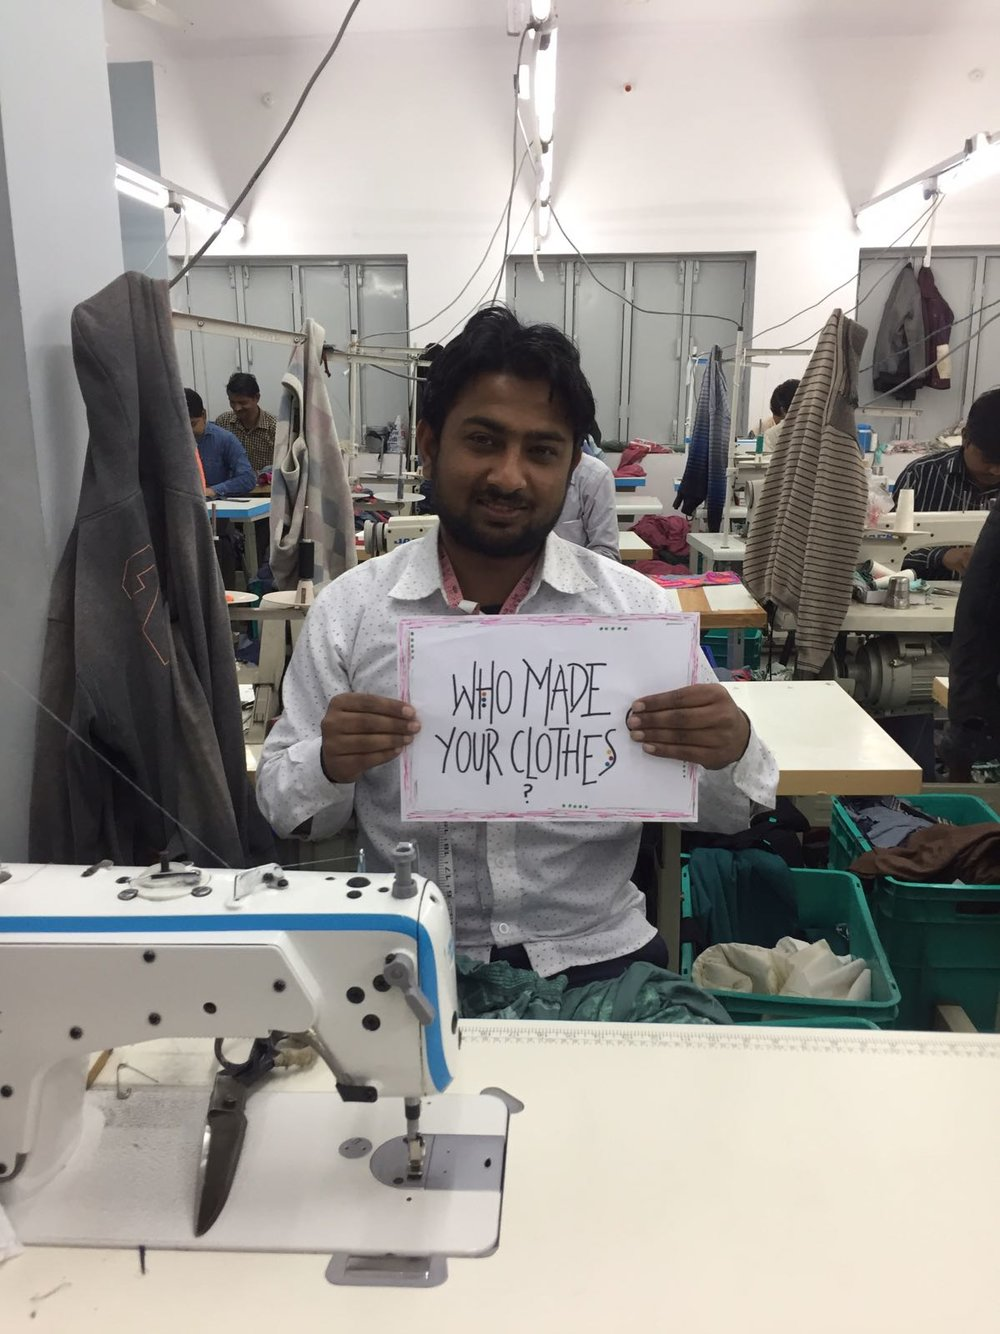 MEET IKBAL MOH - He is the cheeky chap of our 40 strong sewing team. Ikbal has worked for Babulal since the beginning and is a dab hand with a sewing machine. He sings and laughs his way through the day with the biggest smile on his face. He insisted he be the main contender for our snaps so here he is!❤️ #imadeyourclothes